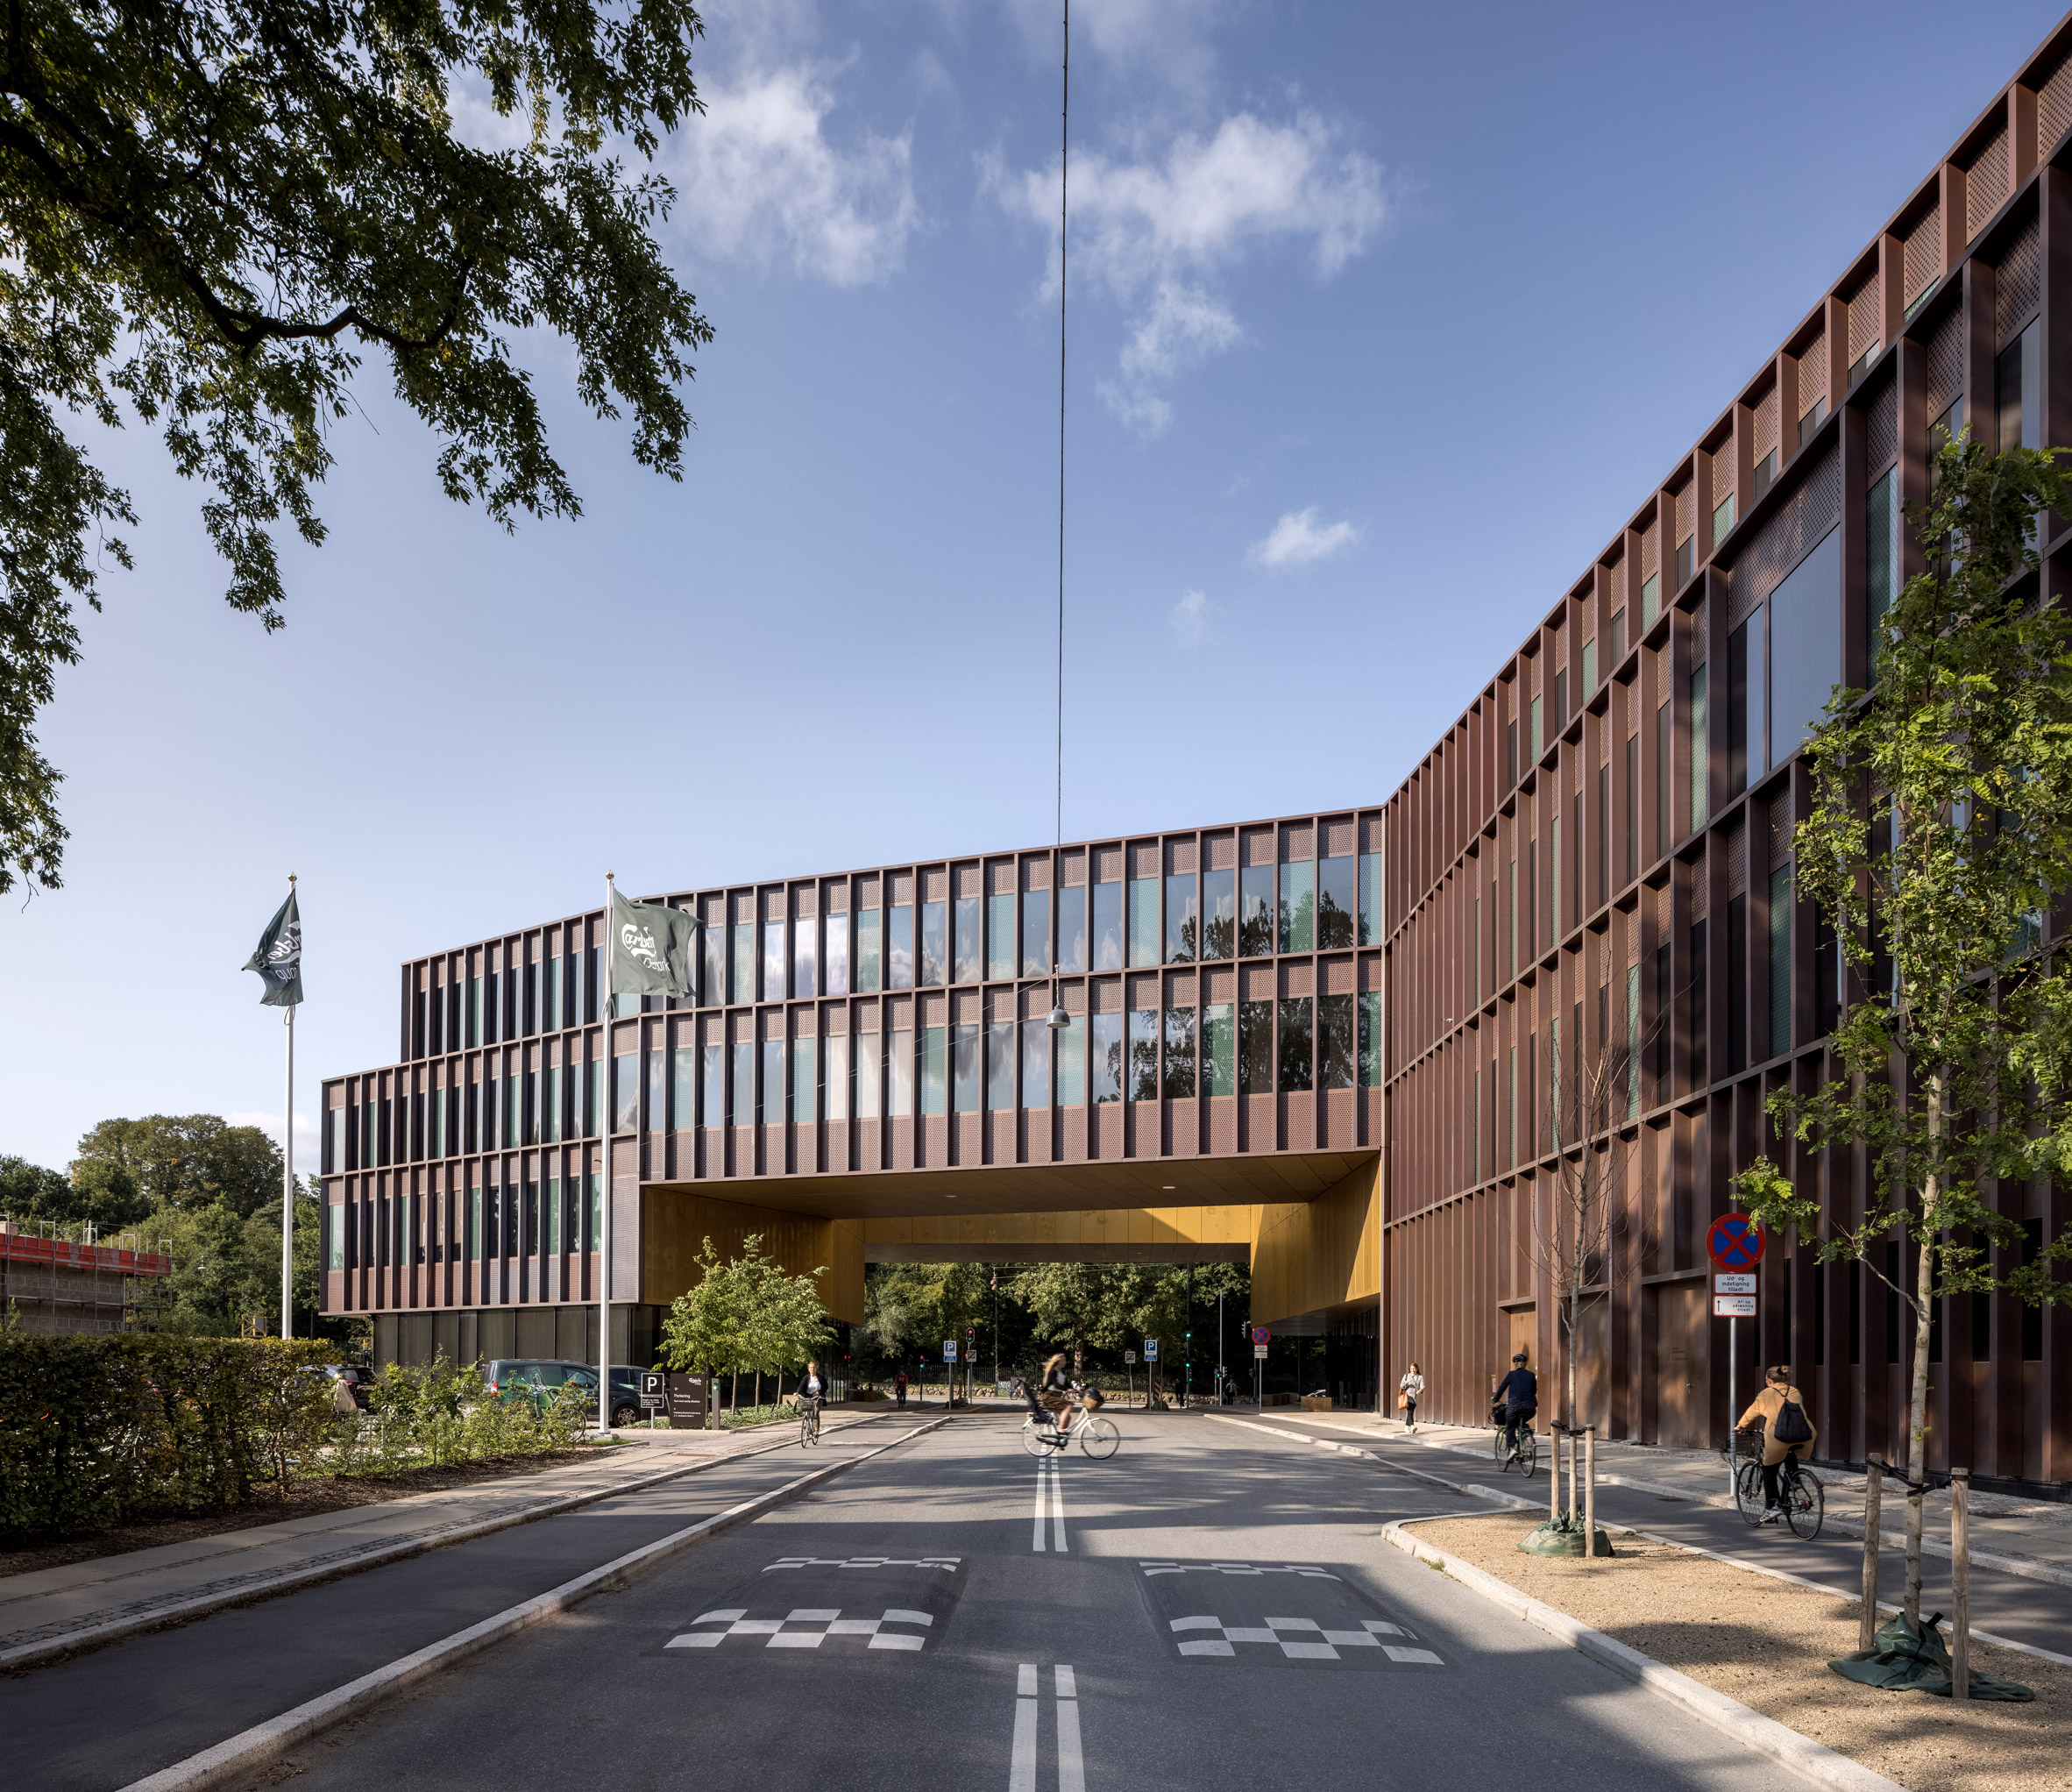 The building has a three legged plan by CF Møller Architects